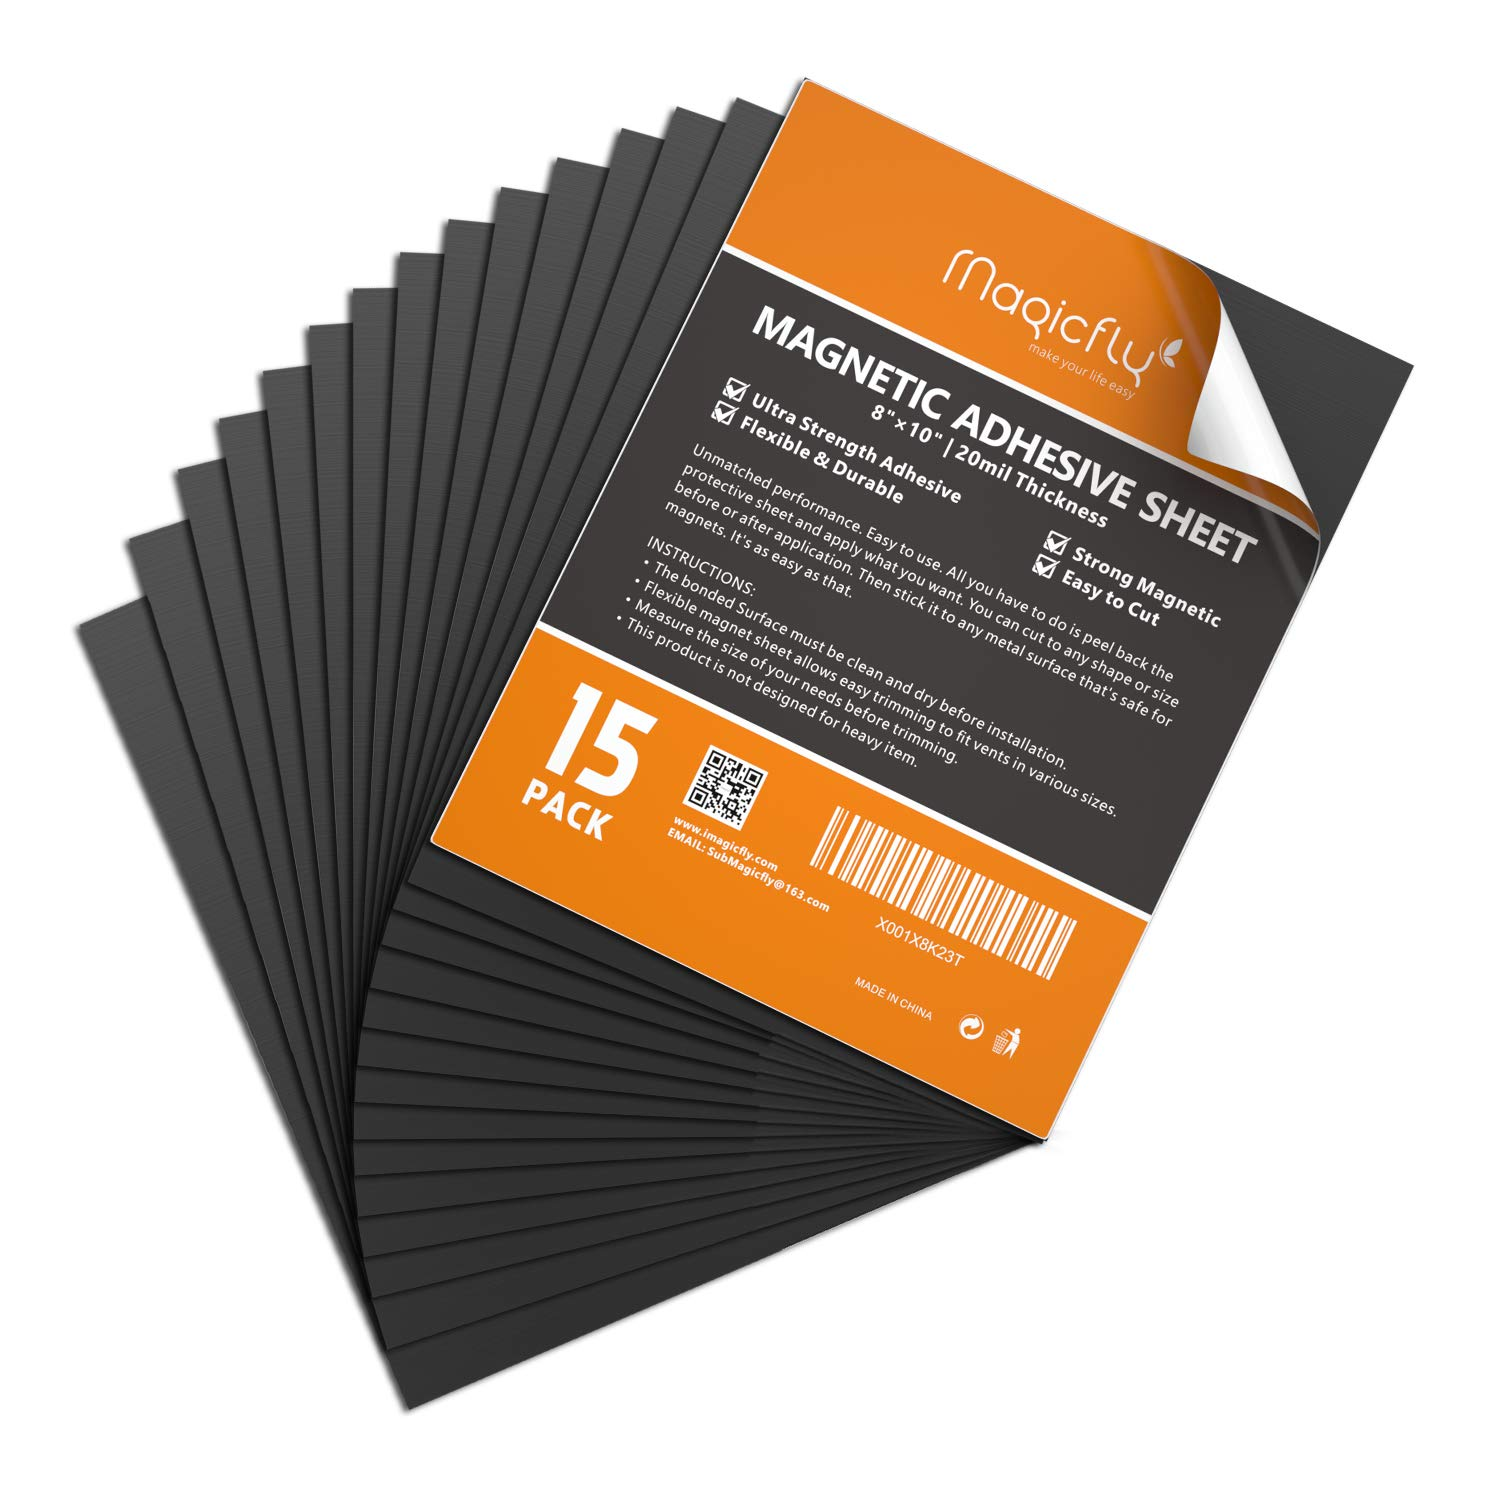 Premium Quality Peel and Stick Magnets by Flexible Magnets 50, 8.5 x 11 x 20 mil Self Adhesive Magnetic Sheets Make Anything a Magnet